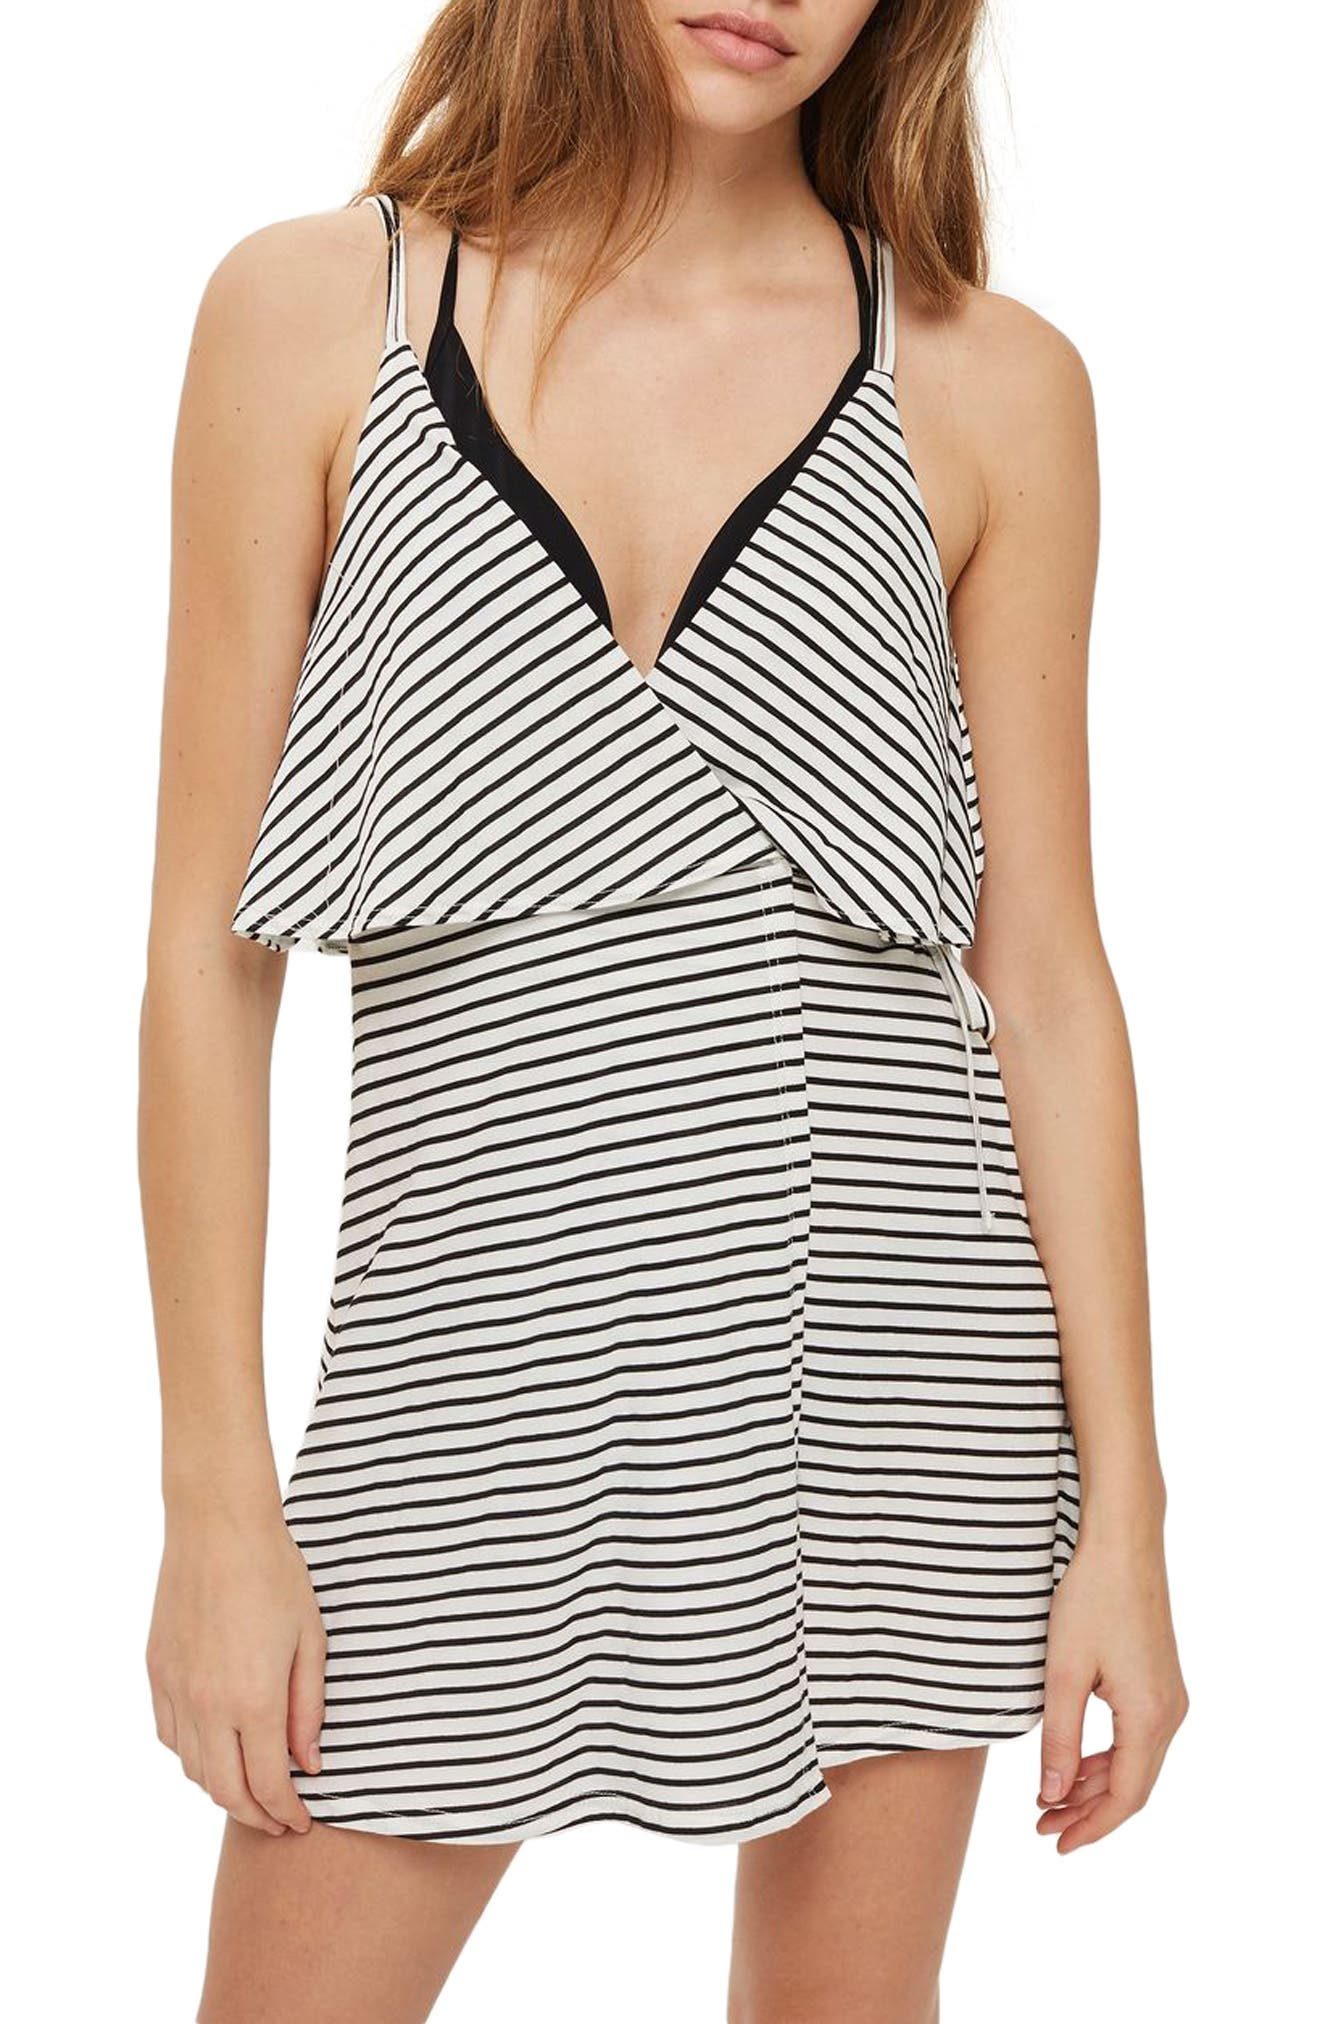 Topshop Stripe Wrap Sundress